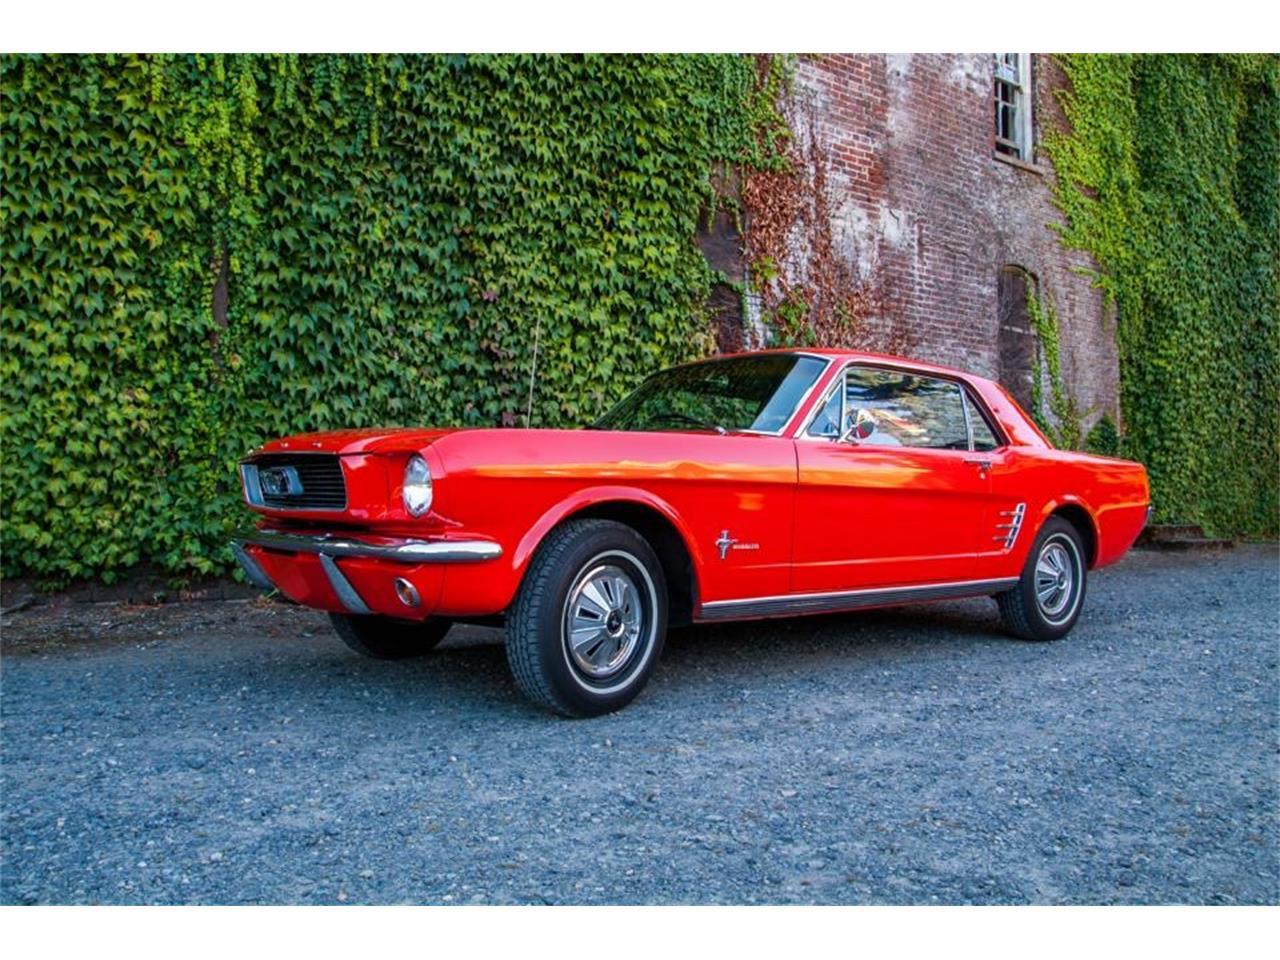 Large Picture of 1966 Ford Mustang located in Vancouver Washington - $11,500.00 Offered by a Private Seller - MZDD